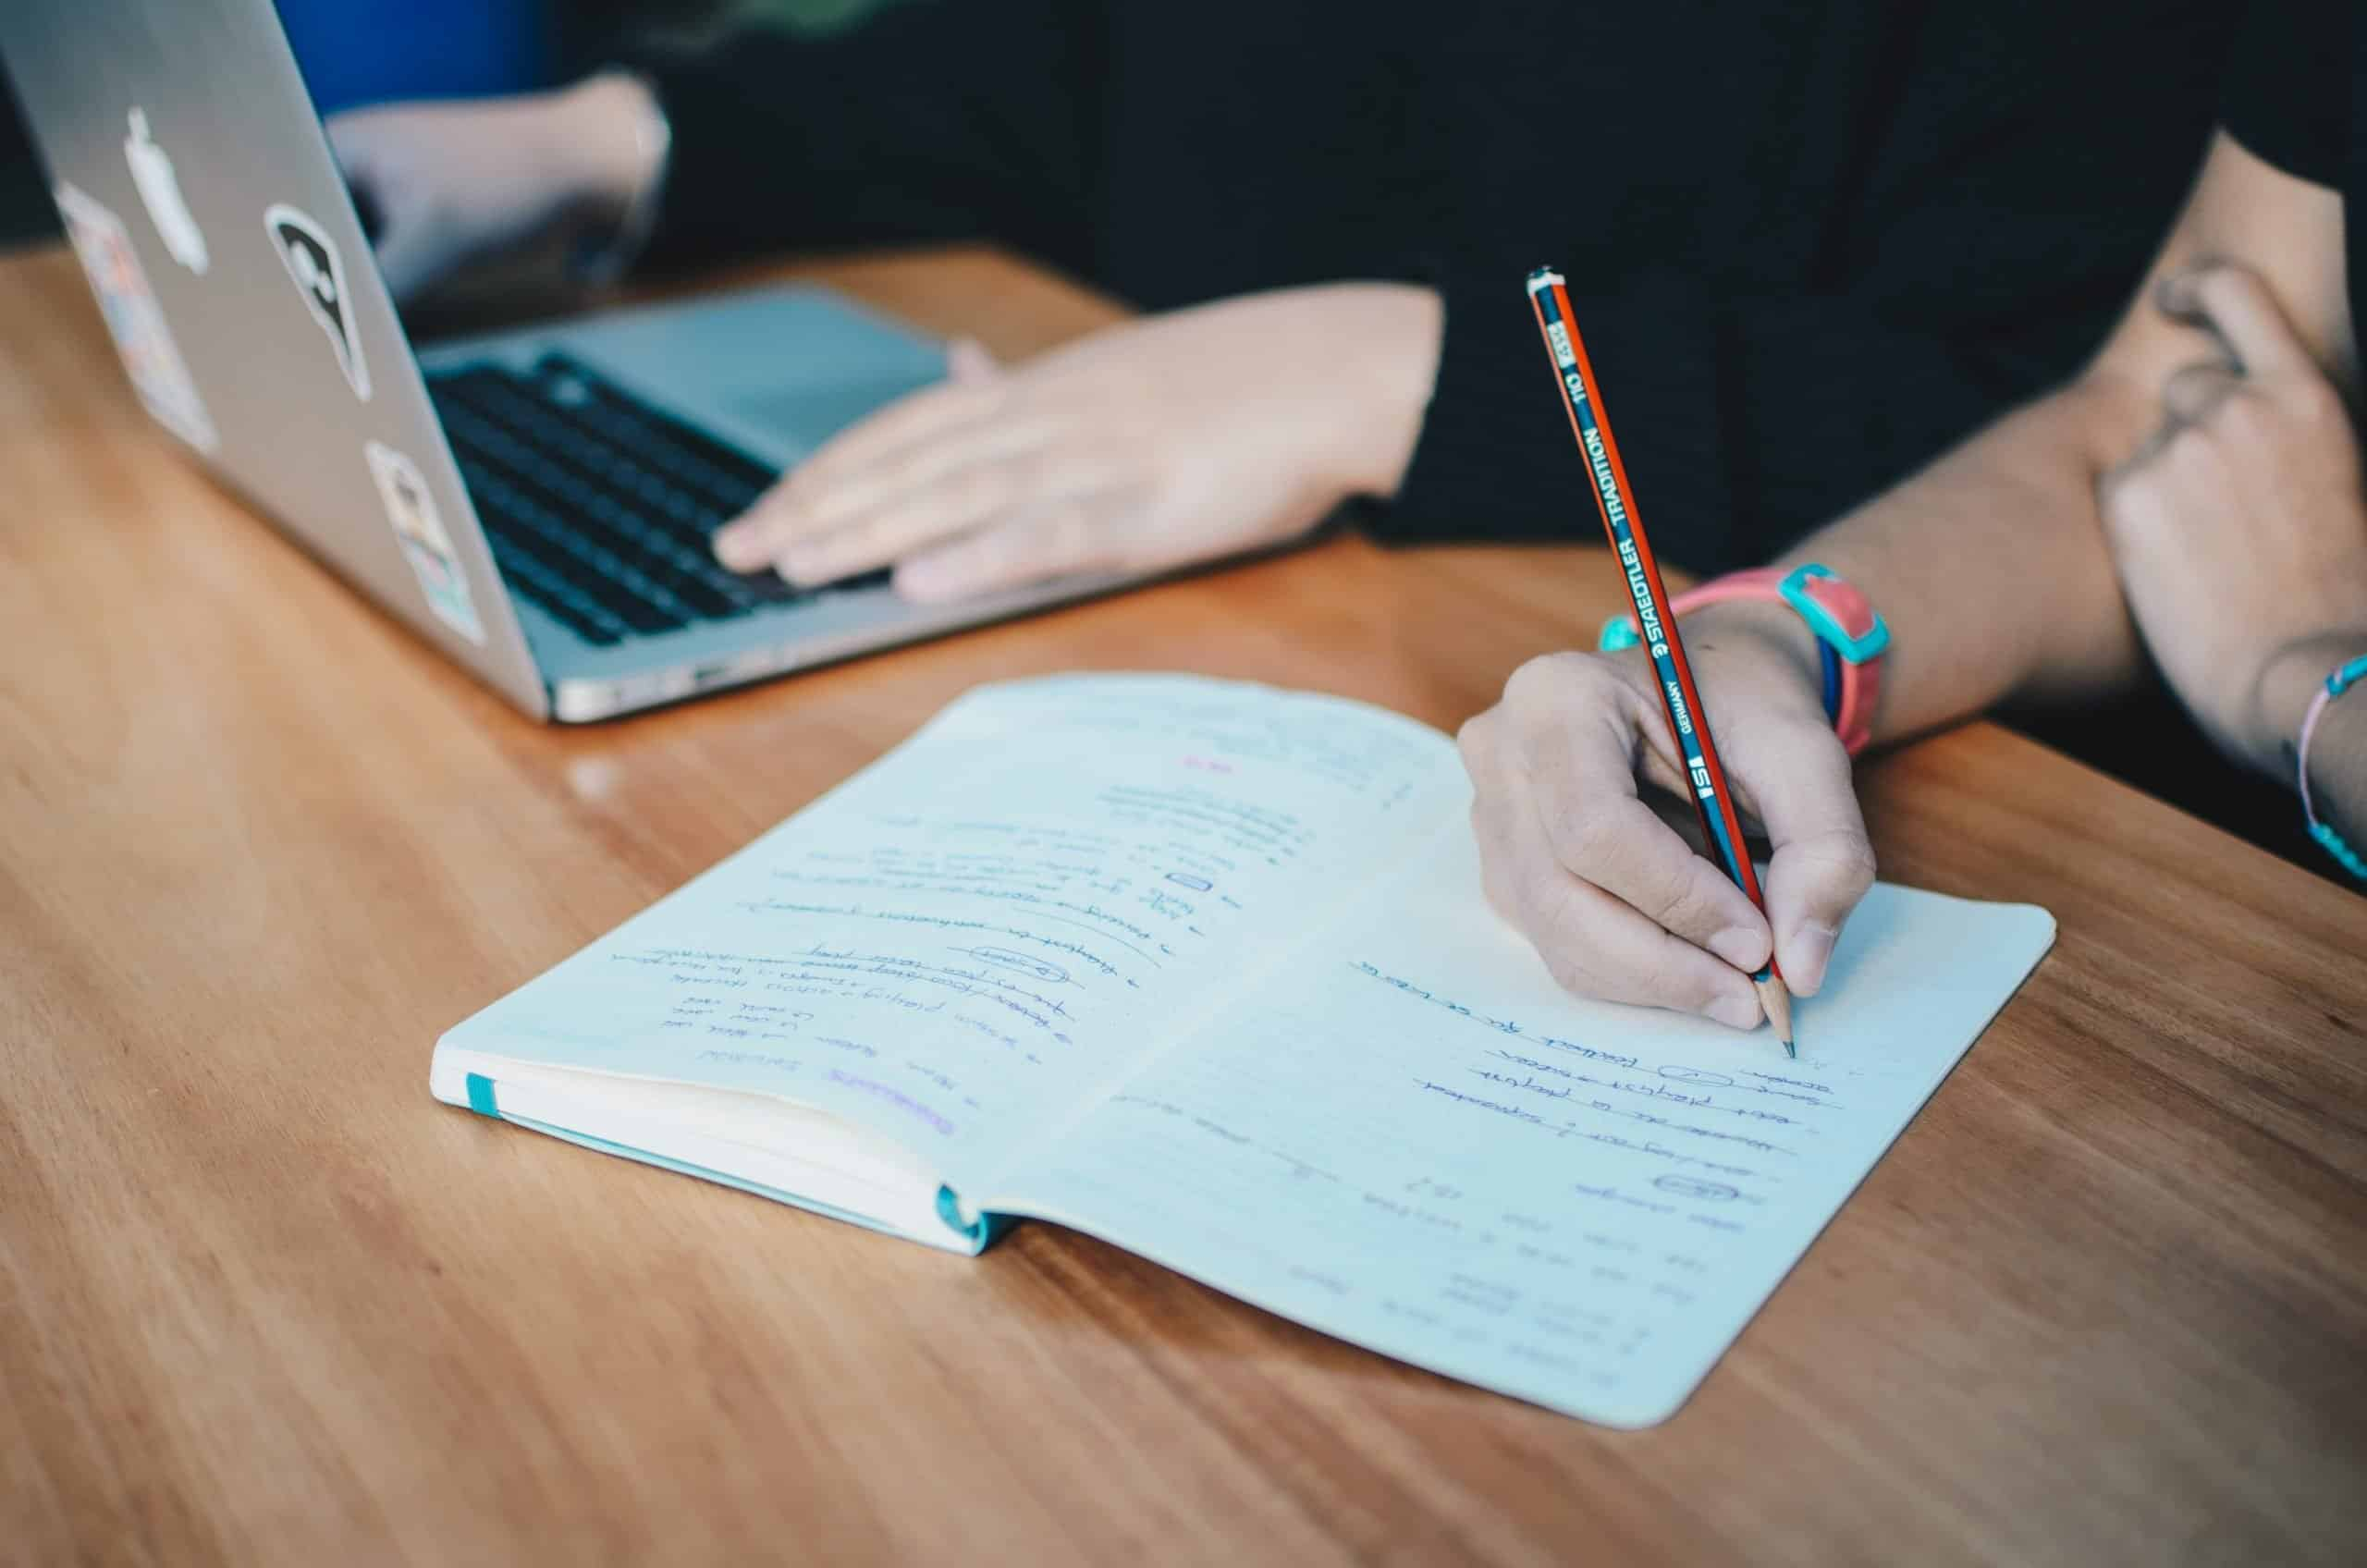 Top ways people are cheating in online assessments